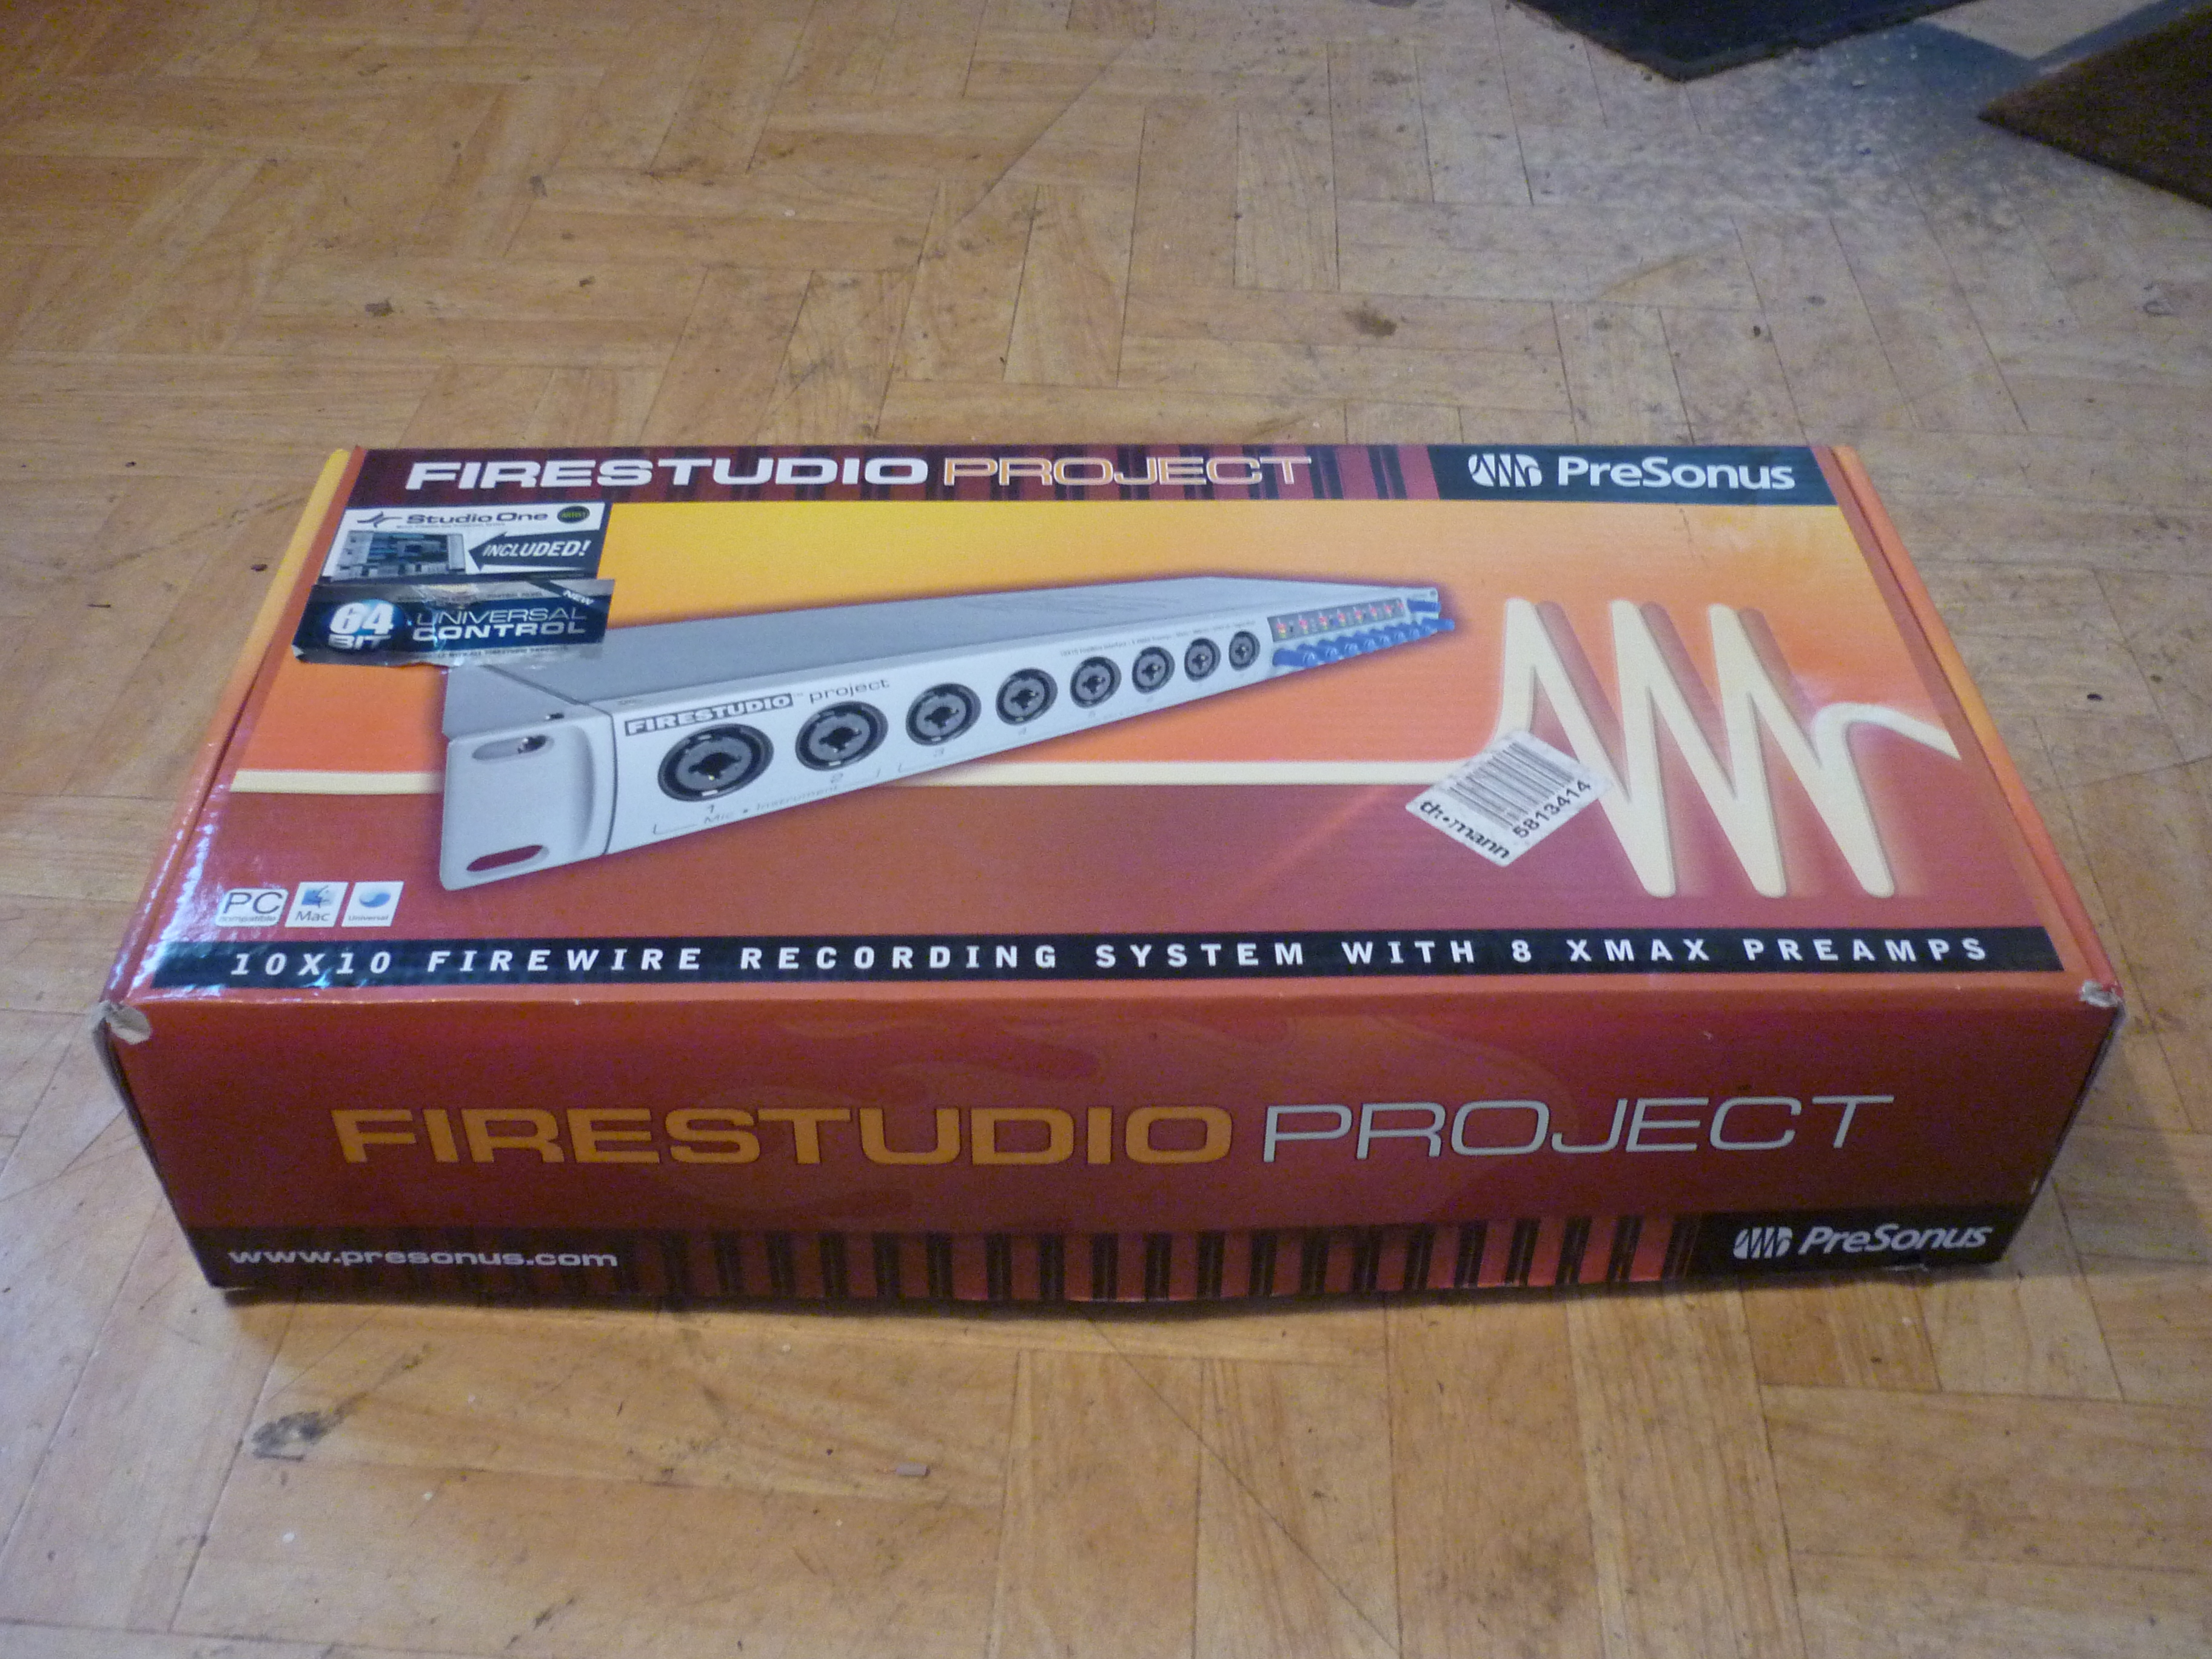 firestudio project Read sweetwater customer reviews for presonus firestudio project rated 40 / 5 by 49 customers.